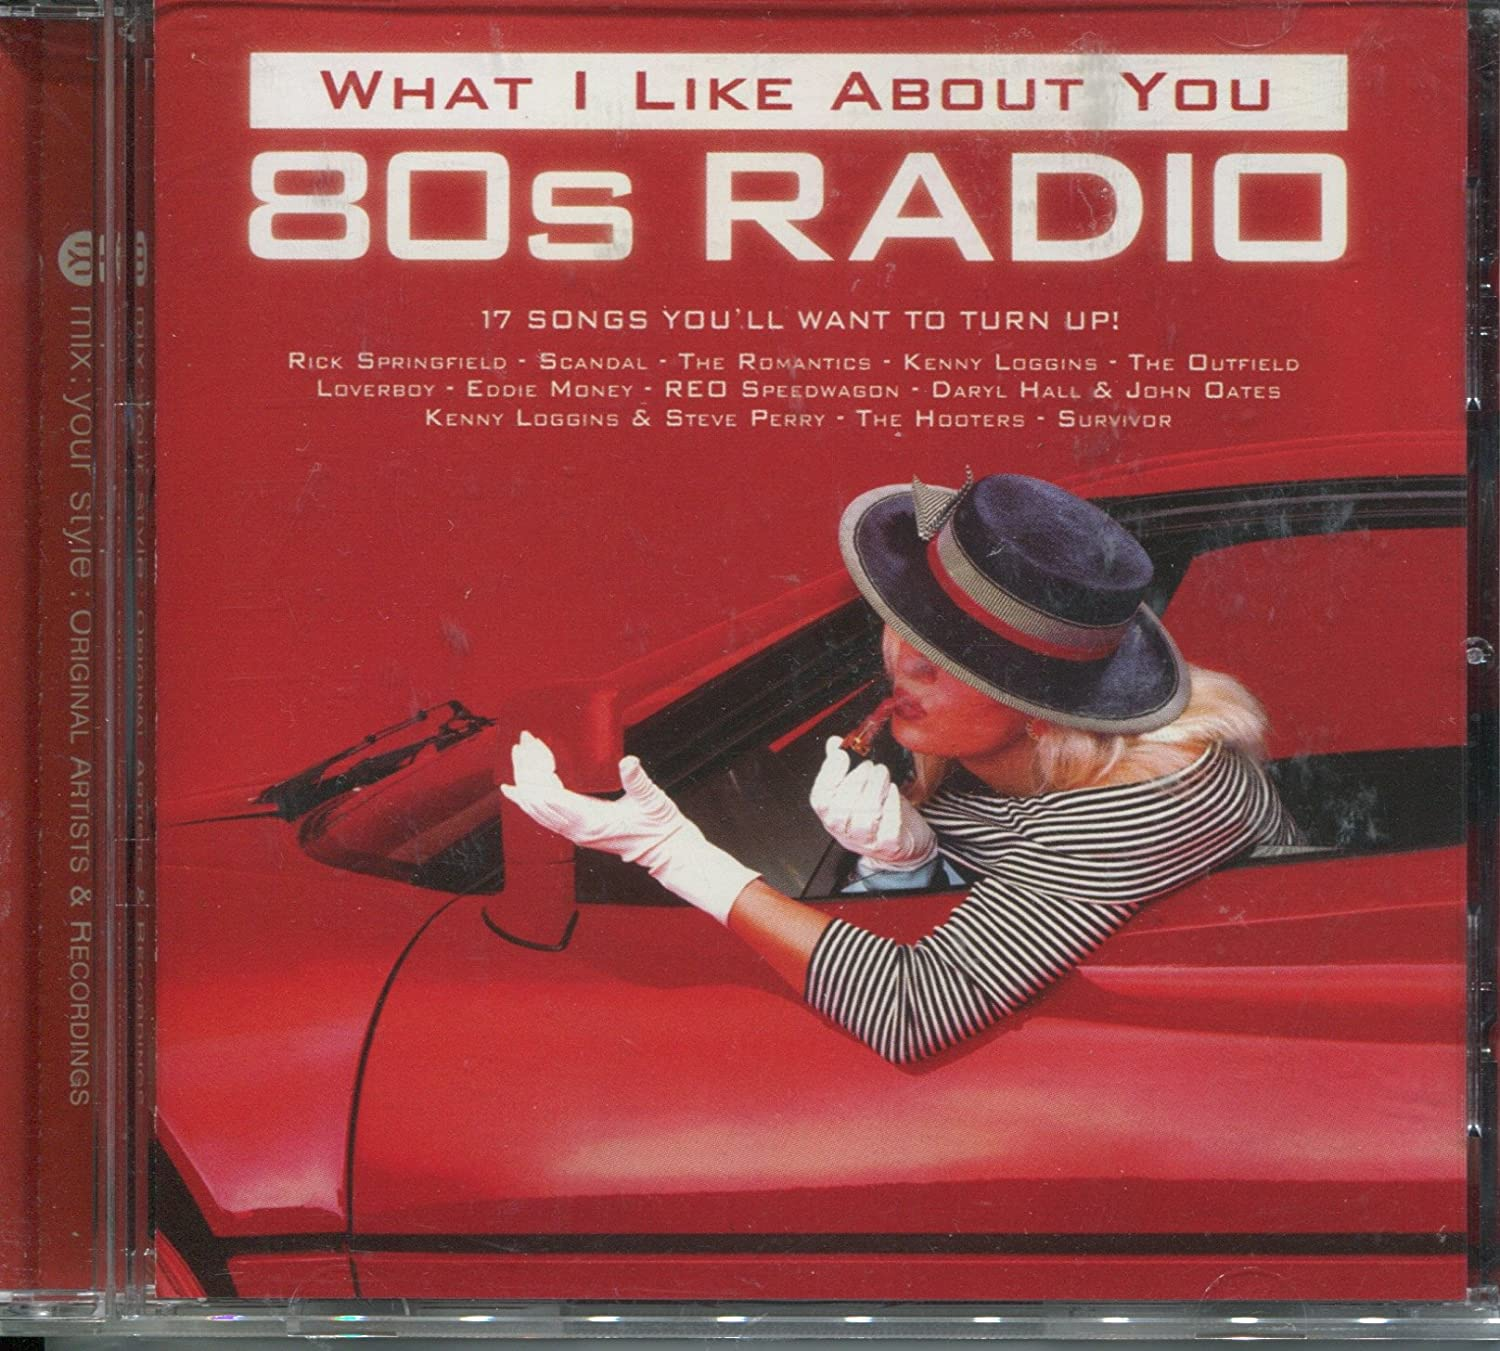 What I Like About You 80's Radio